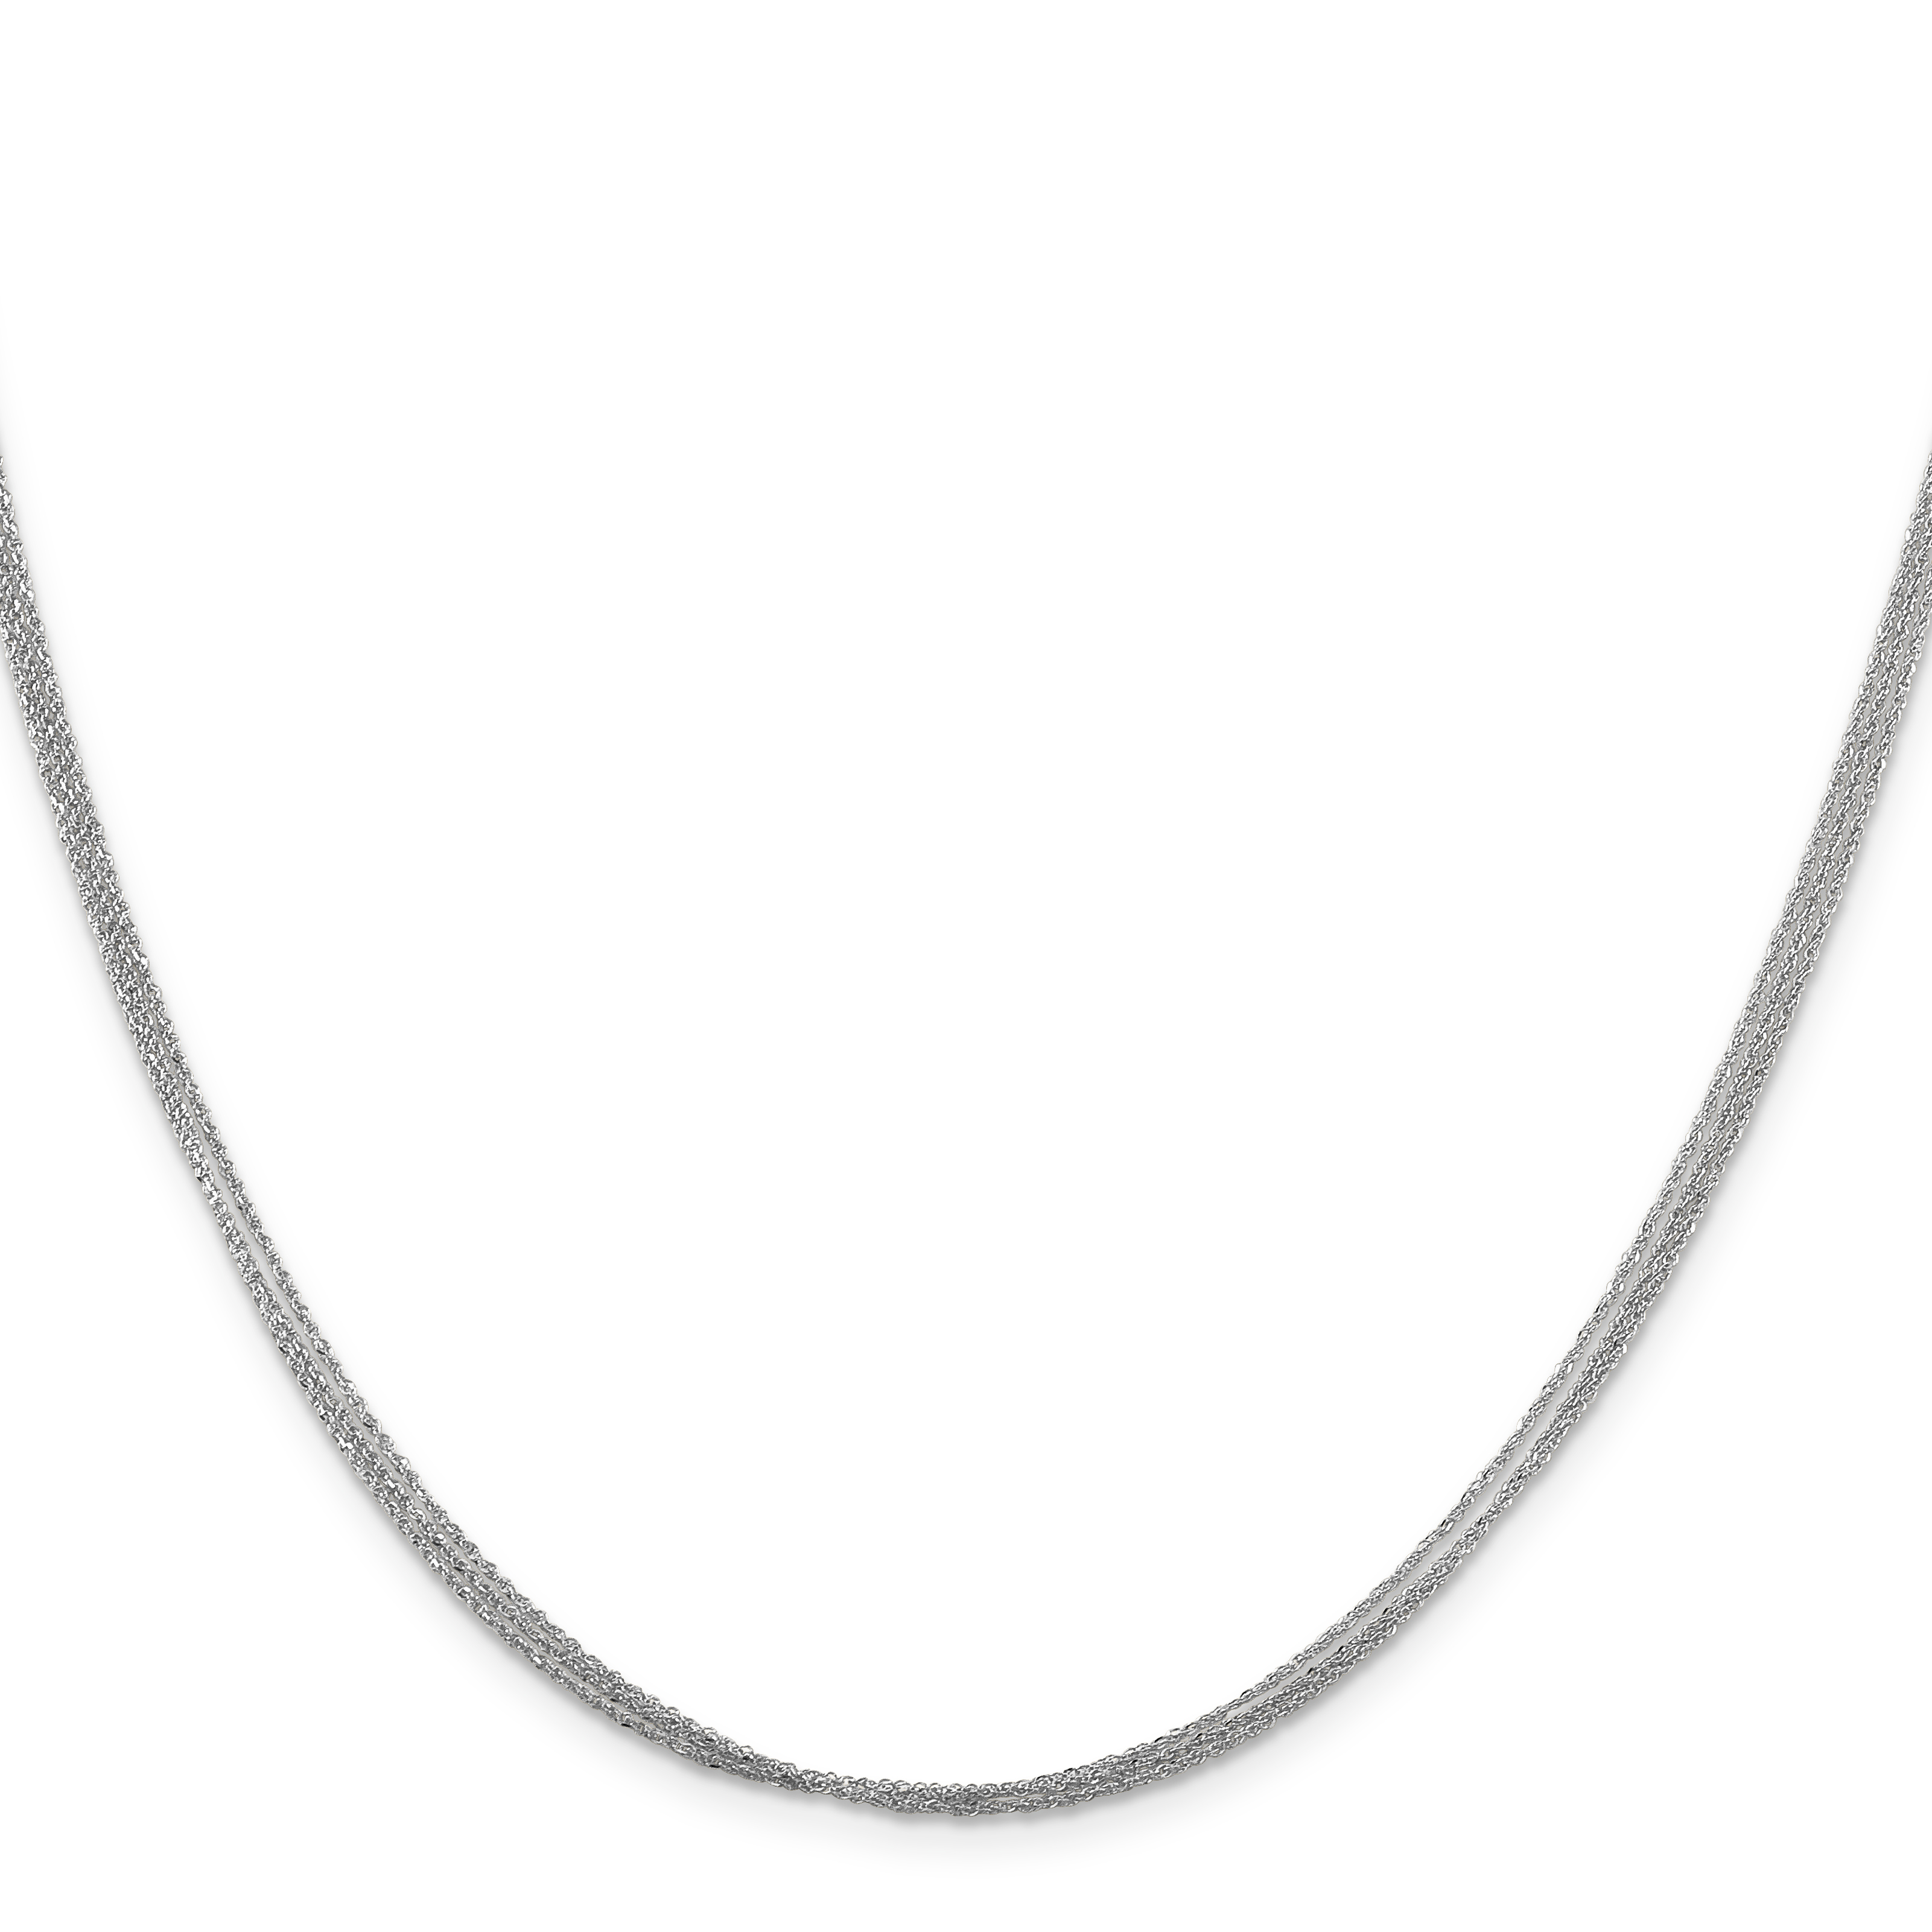 14k White Gold .75 mm Triple Strand Ropa Chain. Weight: 2.29,  Length: 16